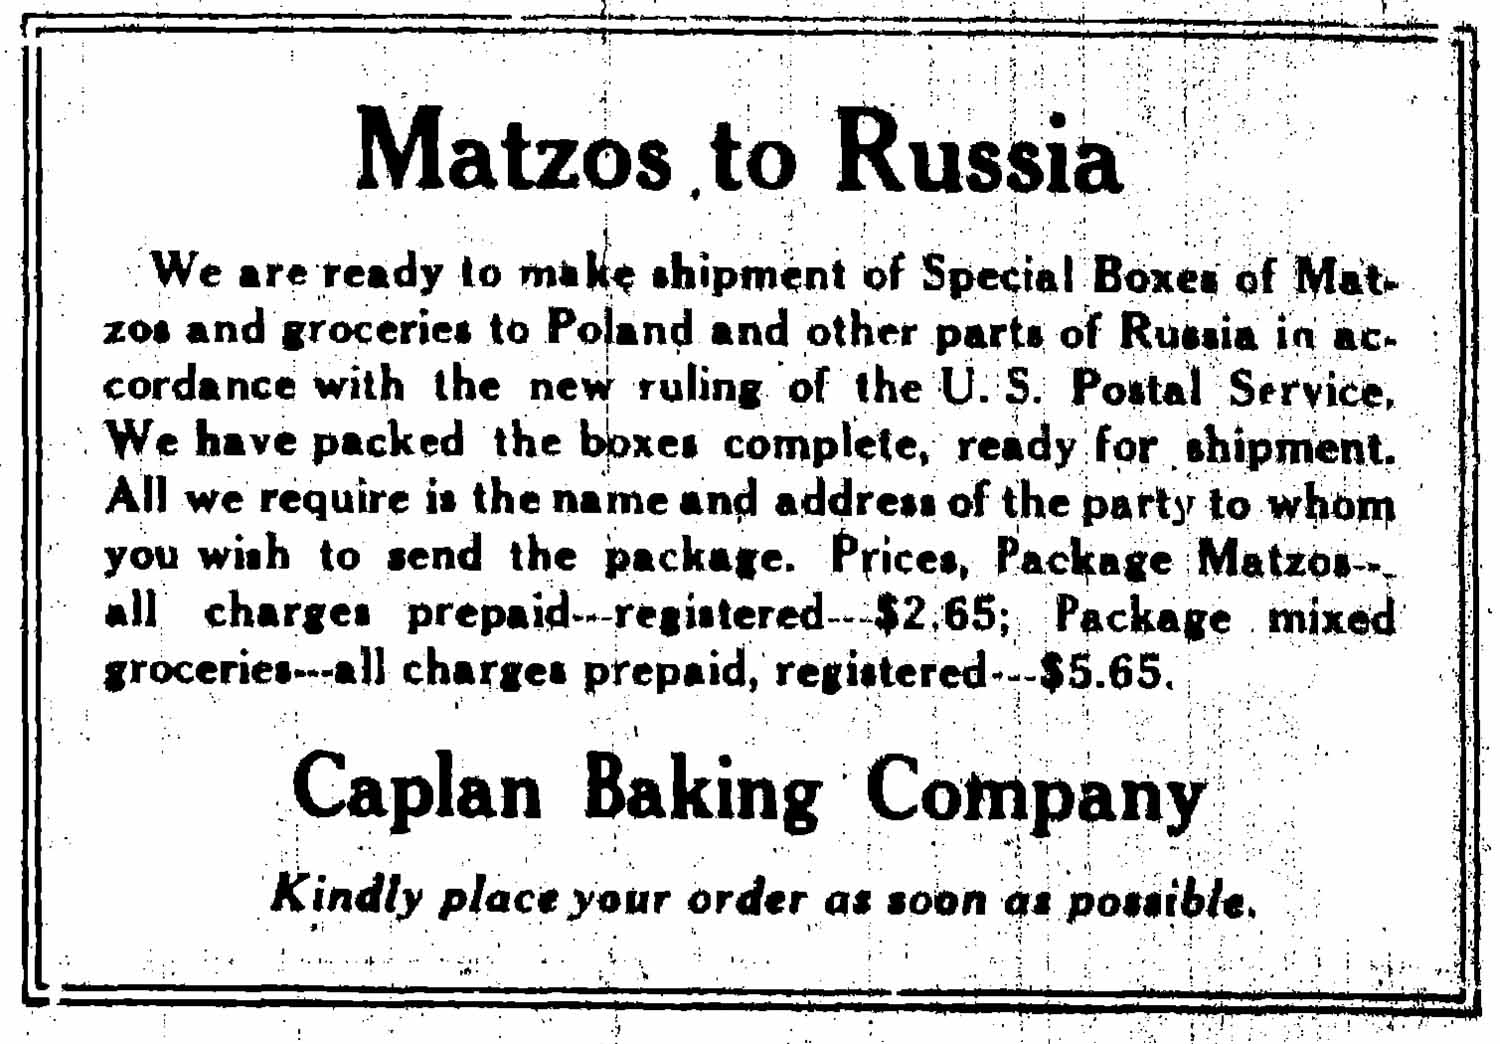 In the years after World War I, the Caplan Baking Company facilitated the shipment of matzah to Europe, allowing divided Jewish families to narrow the distance between them.